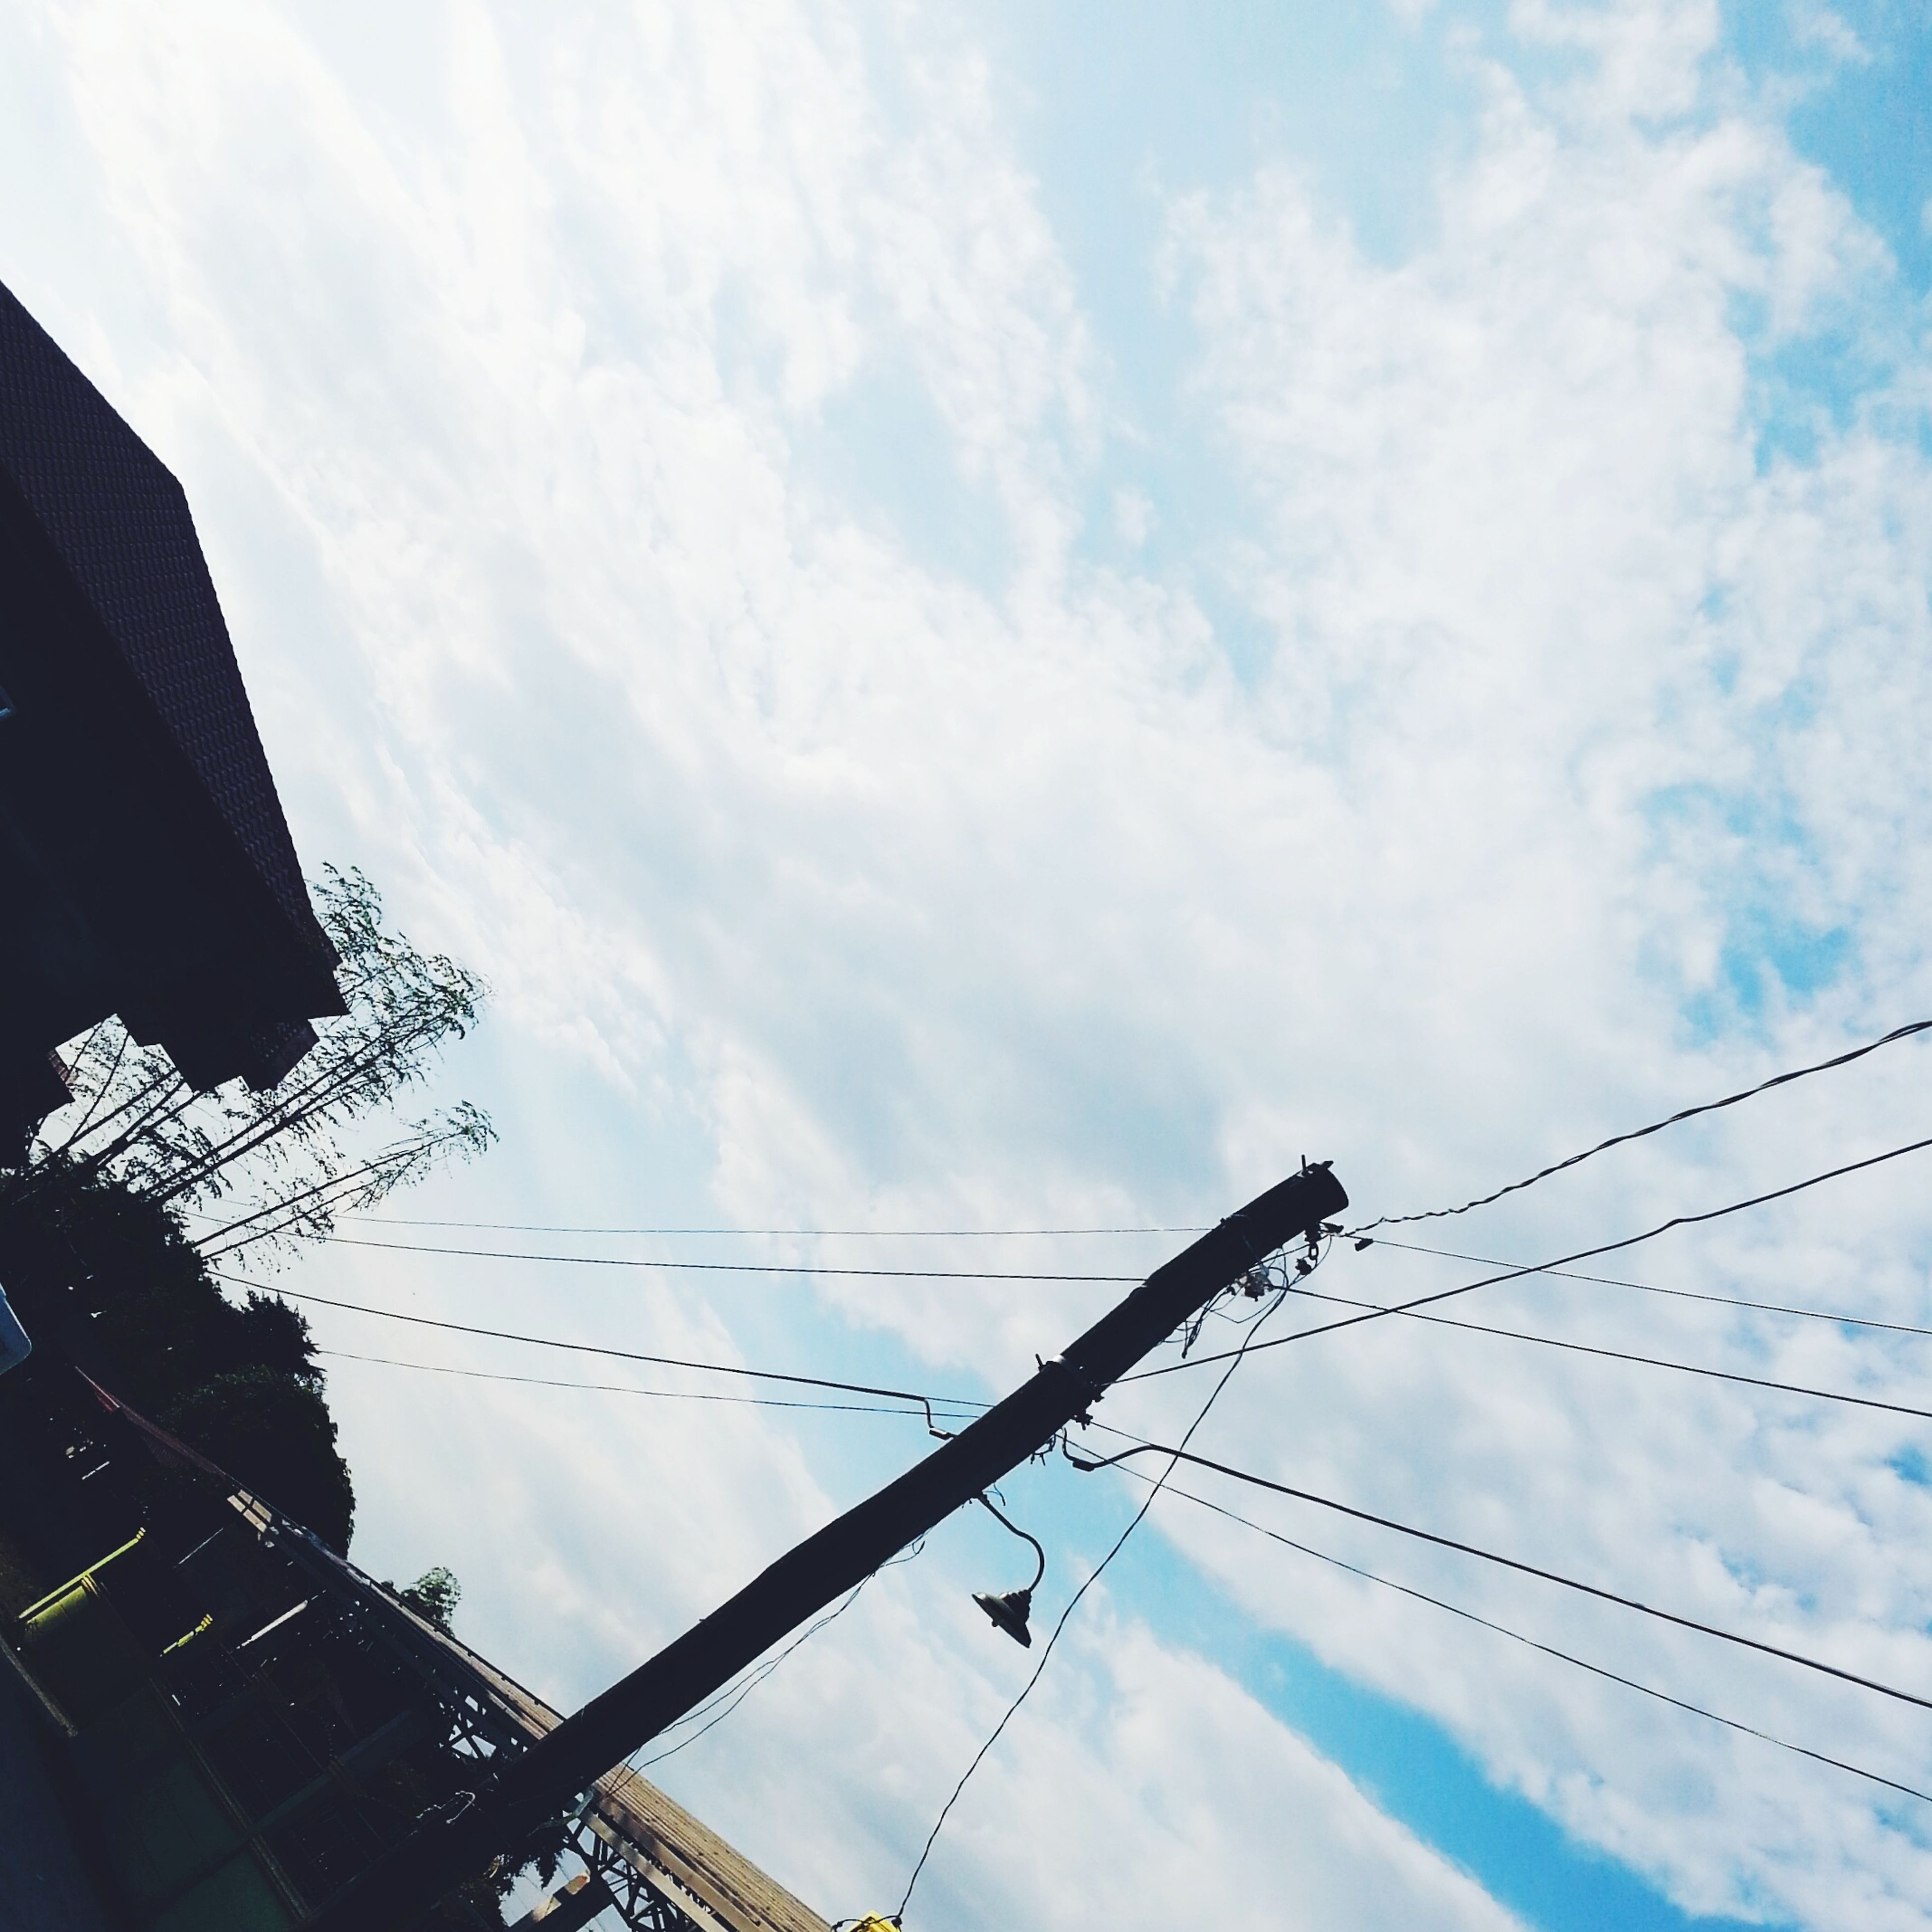 low angle view, sky, cloud - sky, built structure, architecture, building exterior, cloudy, power line, cloud, cable, connection, electricity pylon, tall - high, day, outdoors, electricity, city, no people, power supply, blue